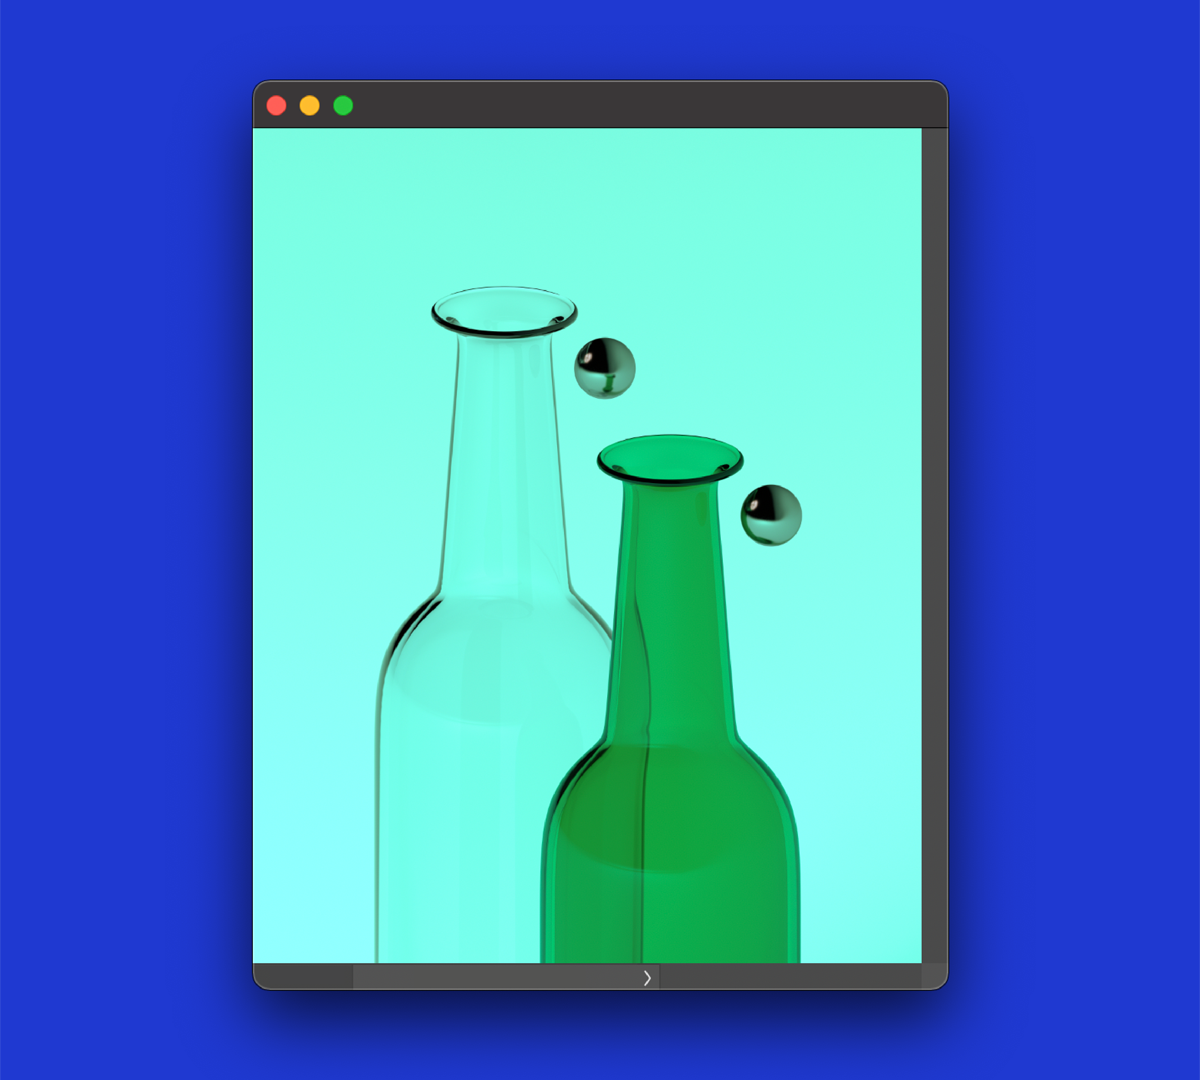 _08 16BY20 WIX.png